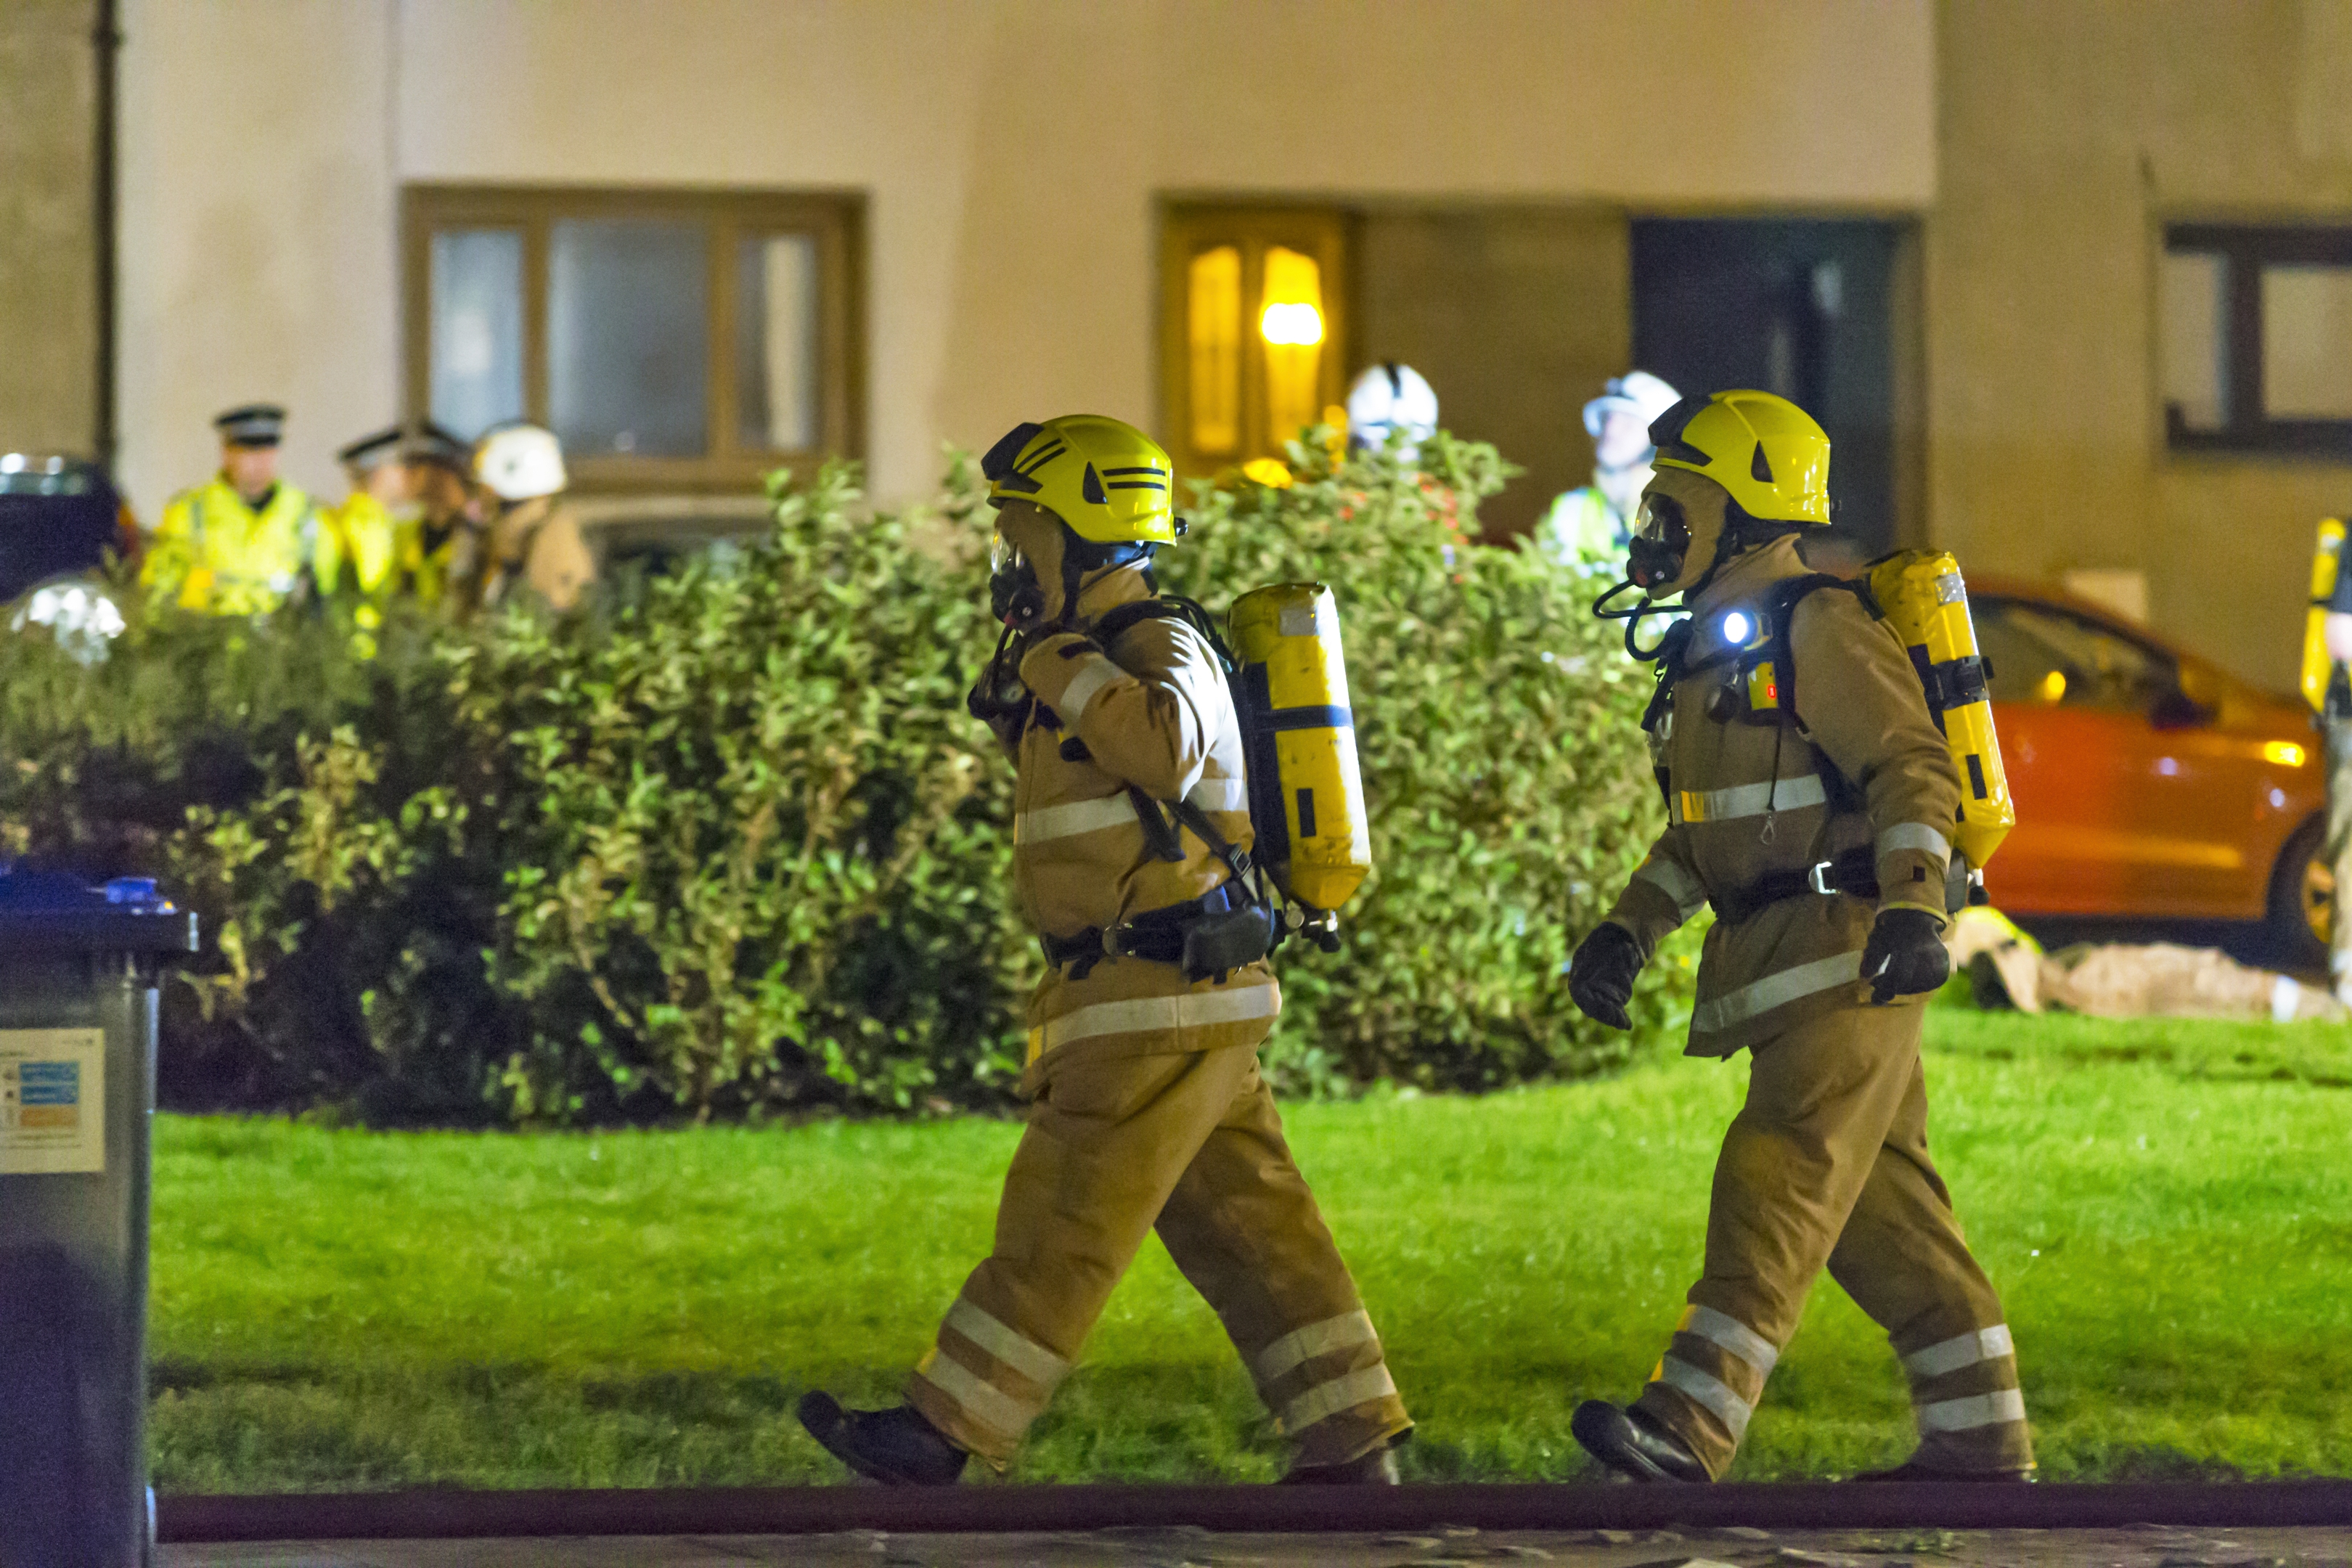 SFRS say 28 firefighters required breathing apparatus during the blaze